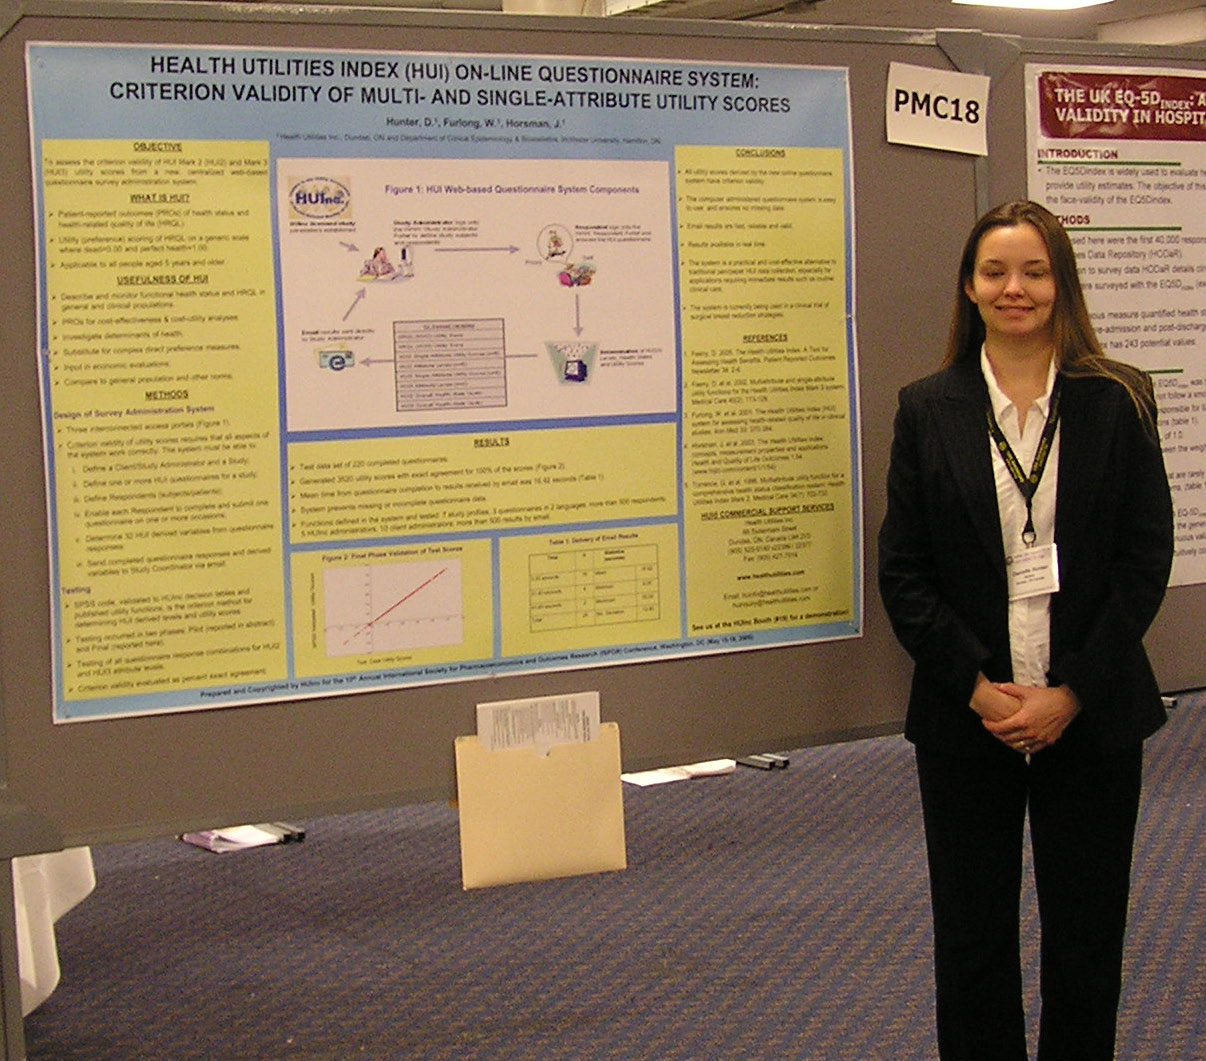 Danielle Hunter and poster at ISPOR2005